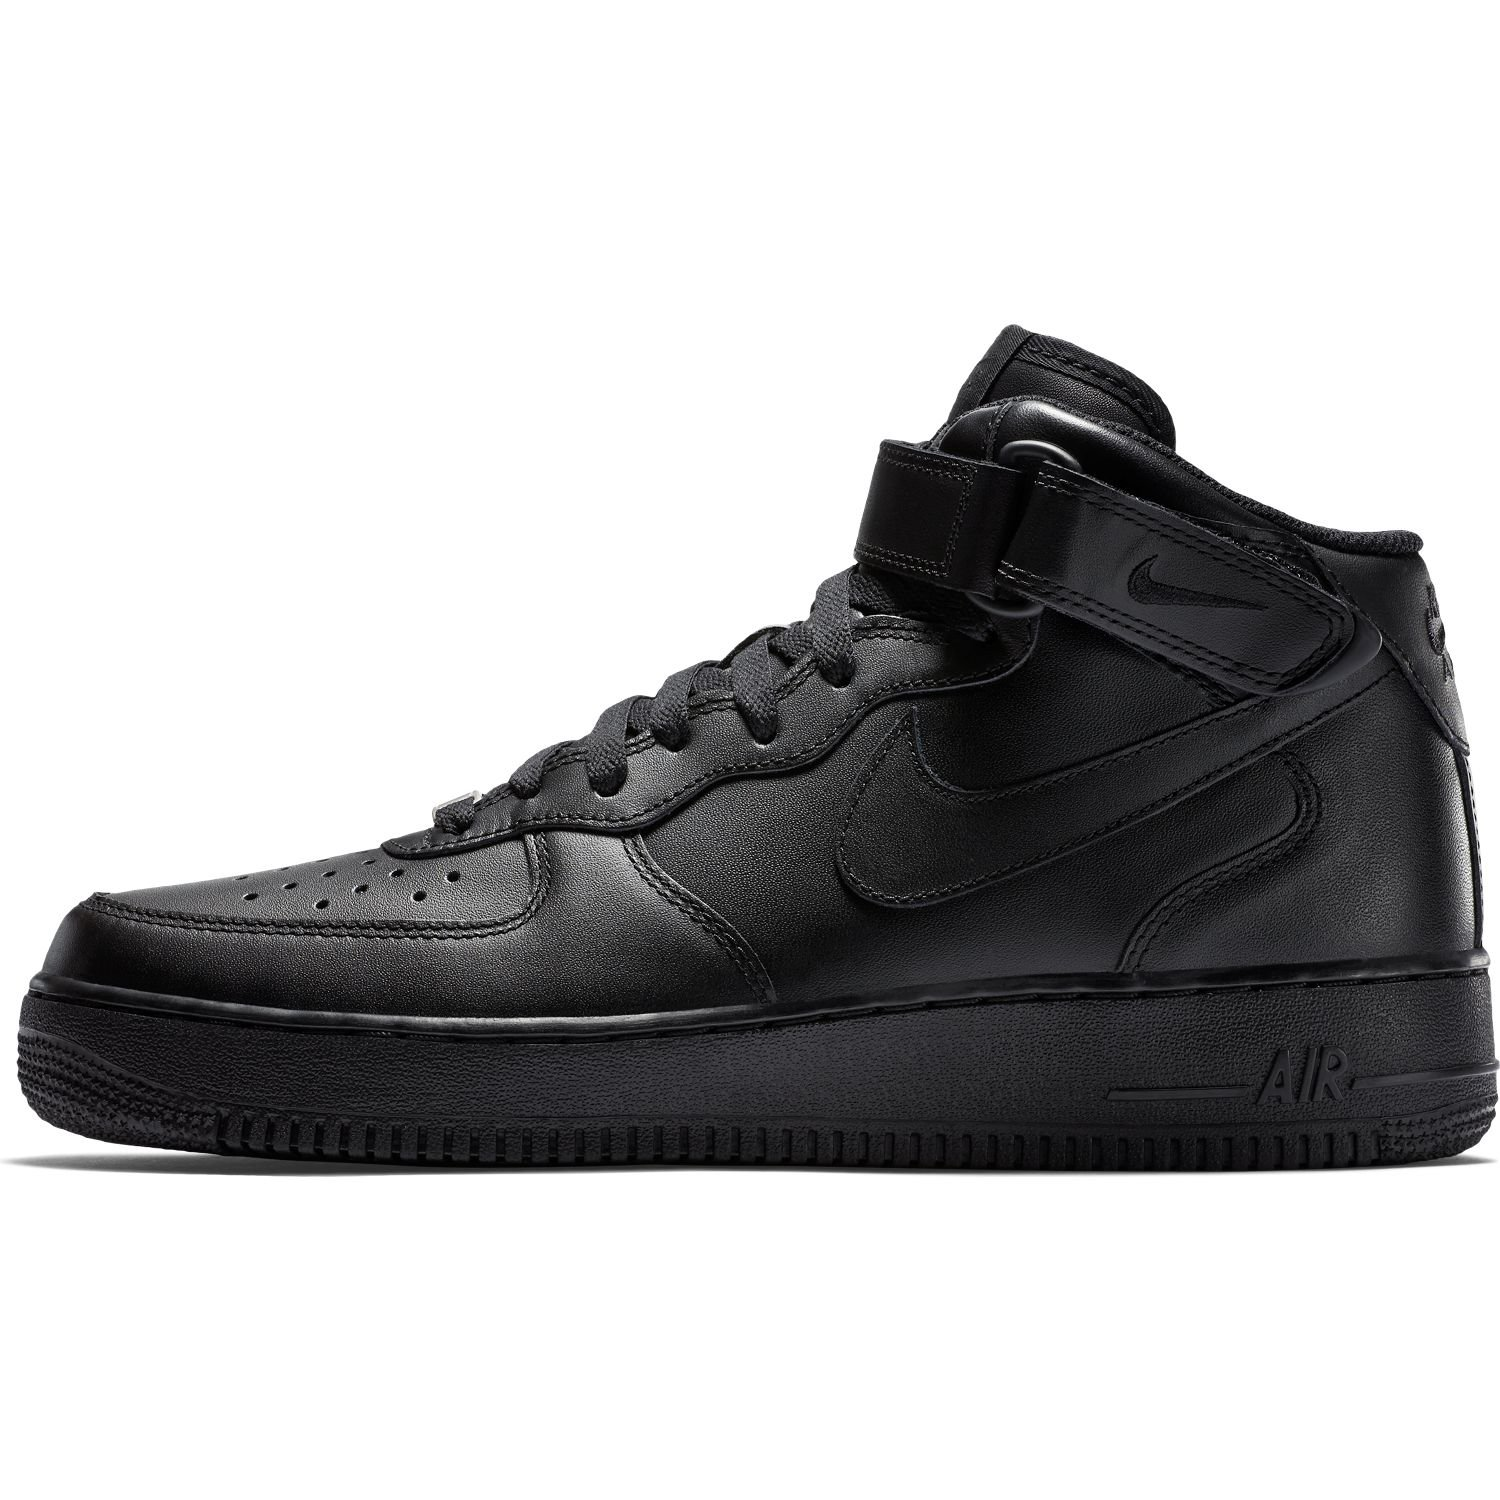 various colors f8b5f 5266d ... BUTY MĘSKIE NIKE AIR FORCE 1 MID 07 ALL BLACK 315123-001 ...